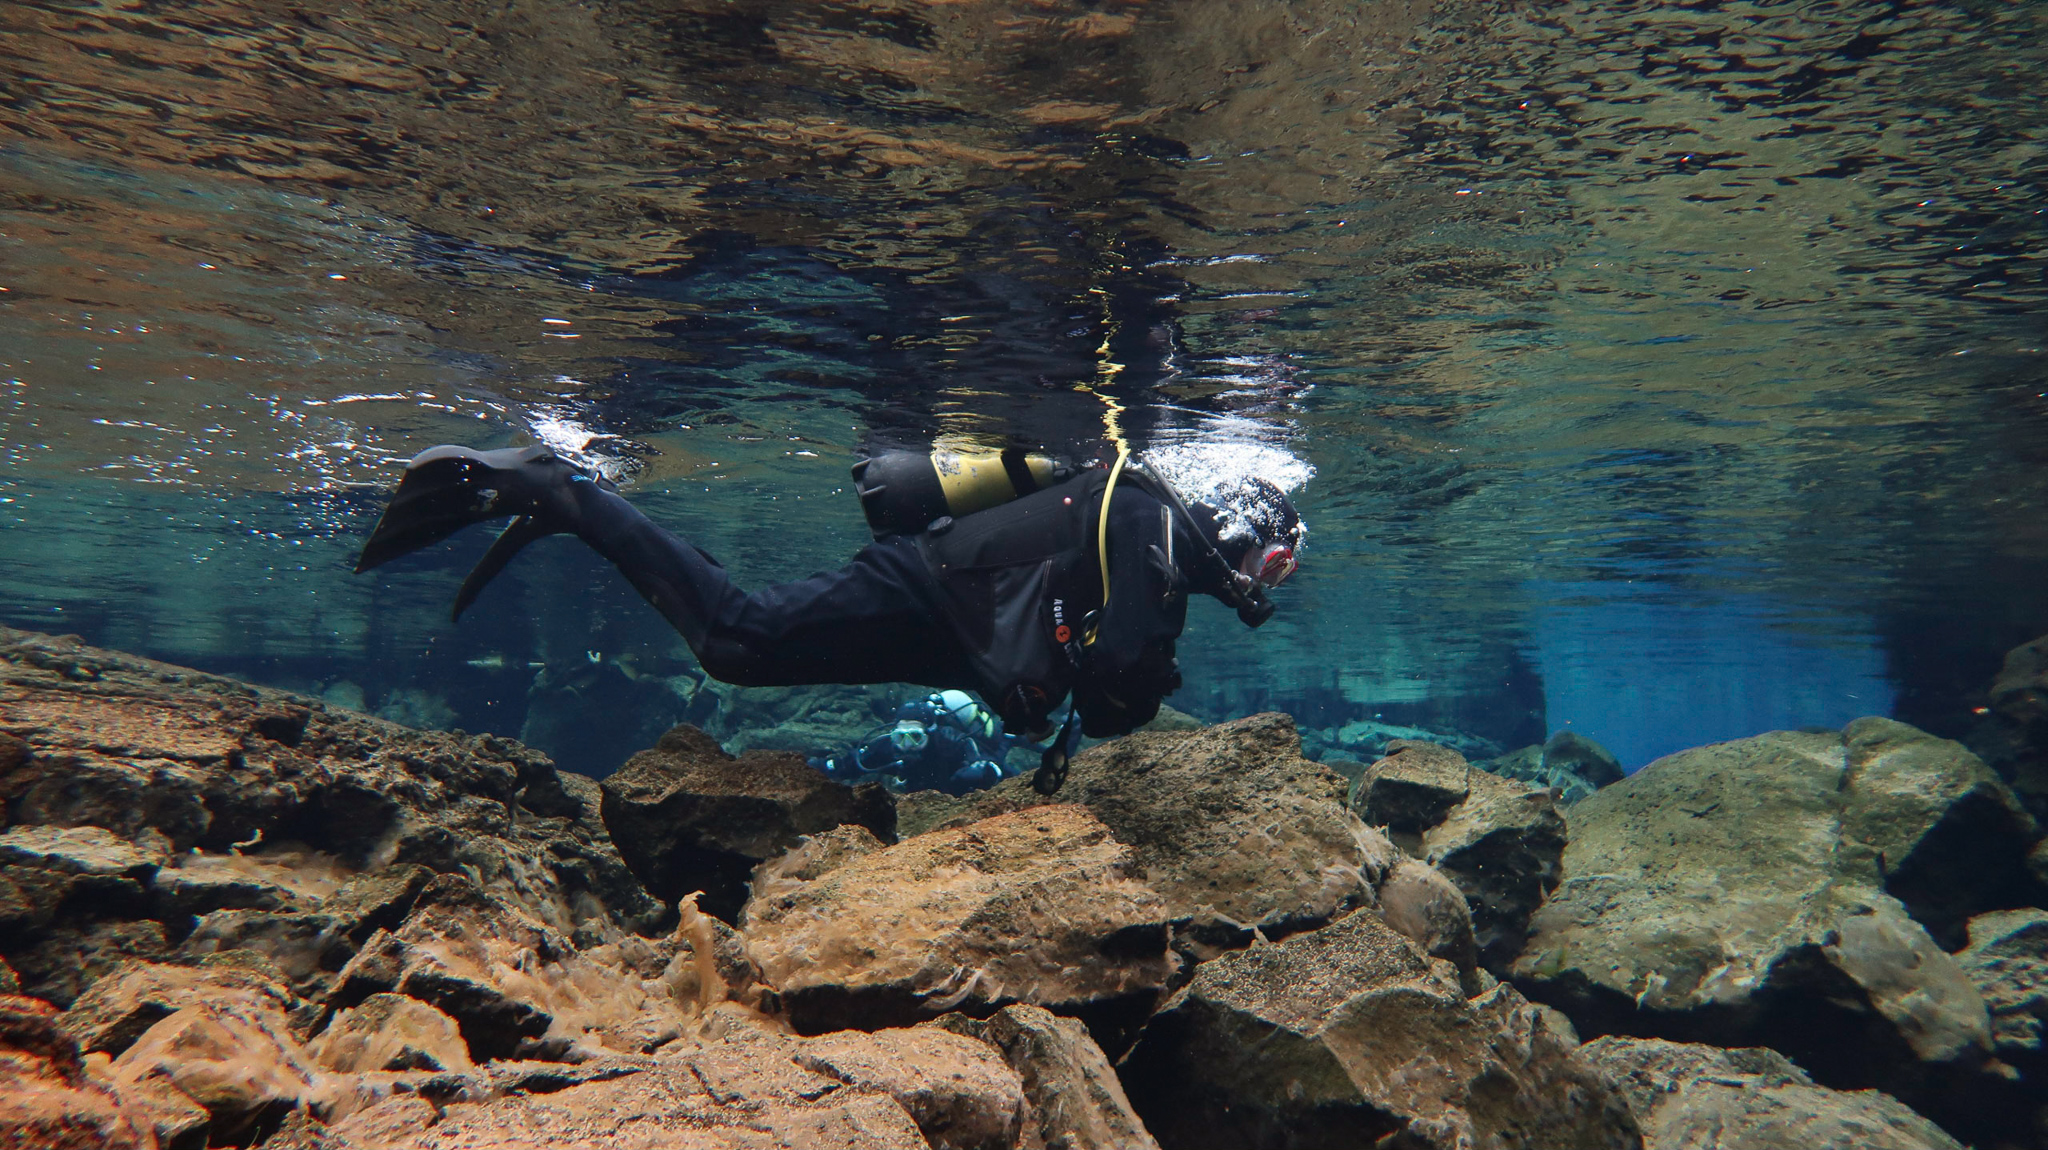 One of the shallow sections at Silfra Fissure in Thingvellir National Park, Iceland. Photo by Tania Roque of DIVE.IS